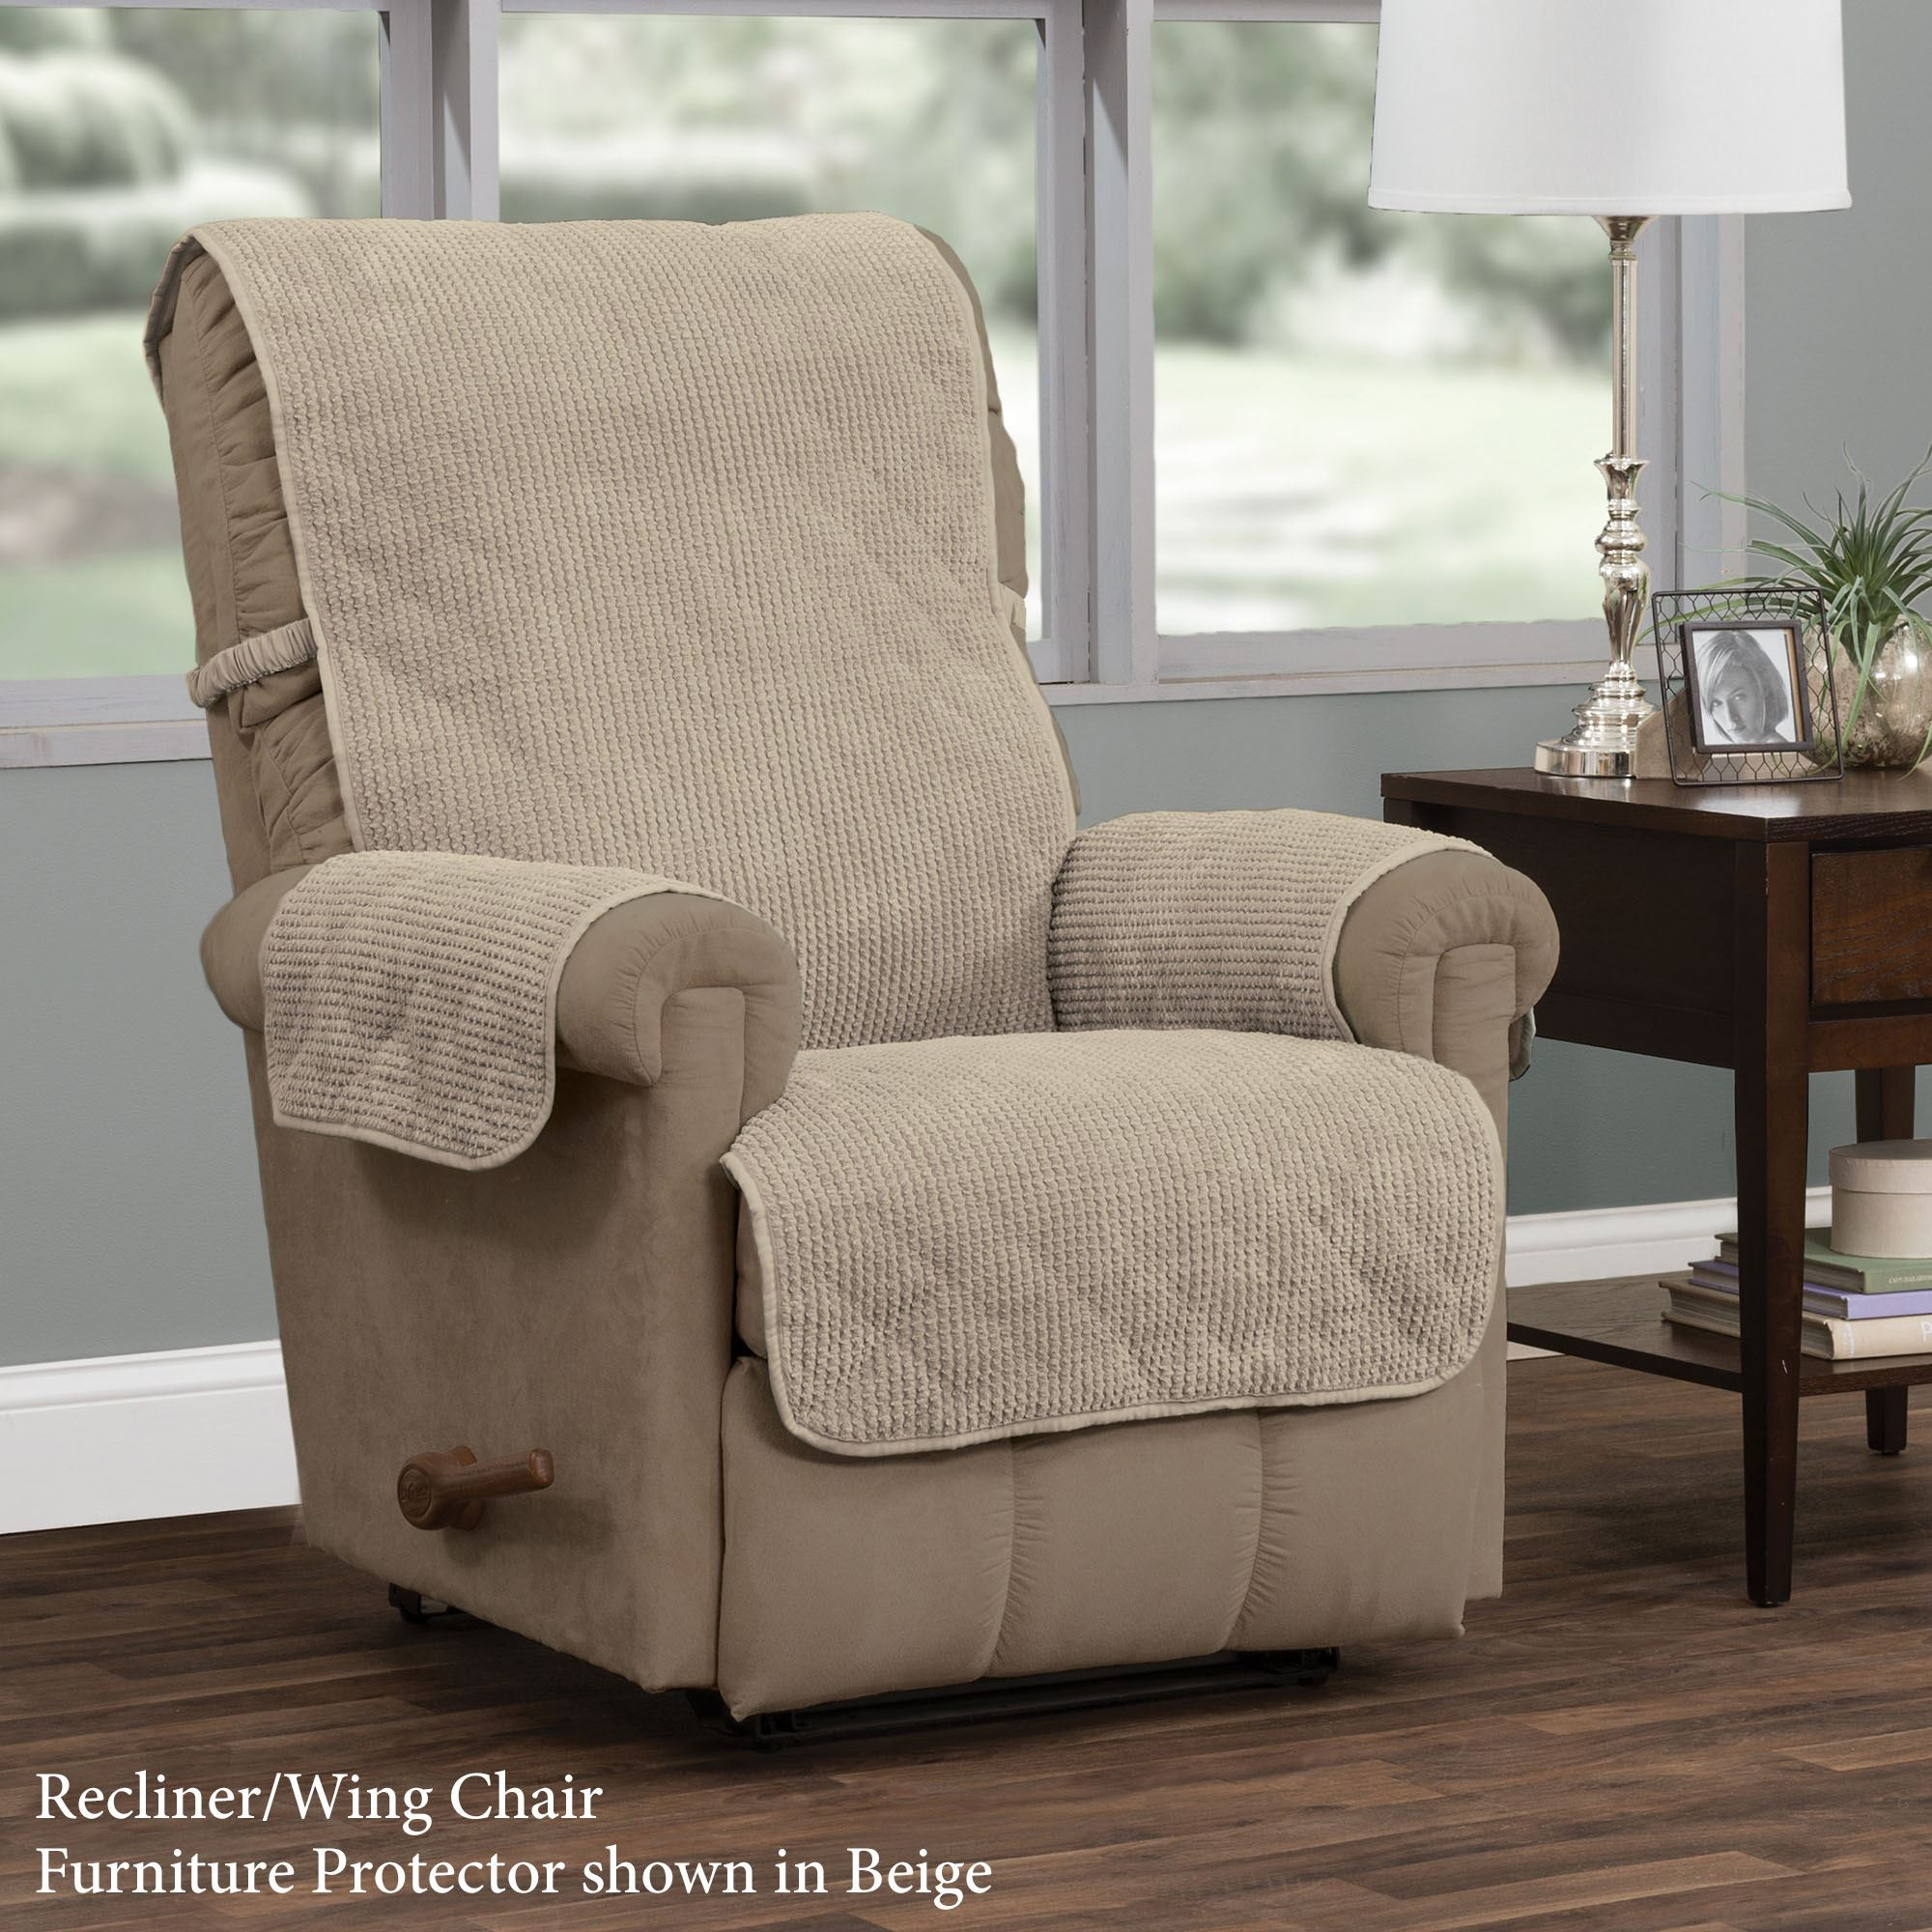 Remington Secure Fit Furniture Protectors With Straps